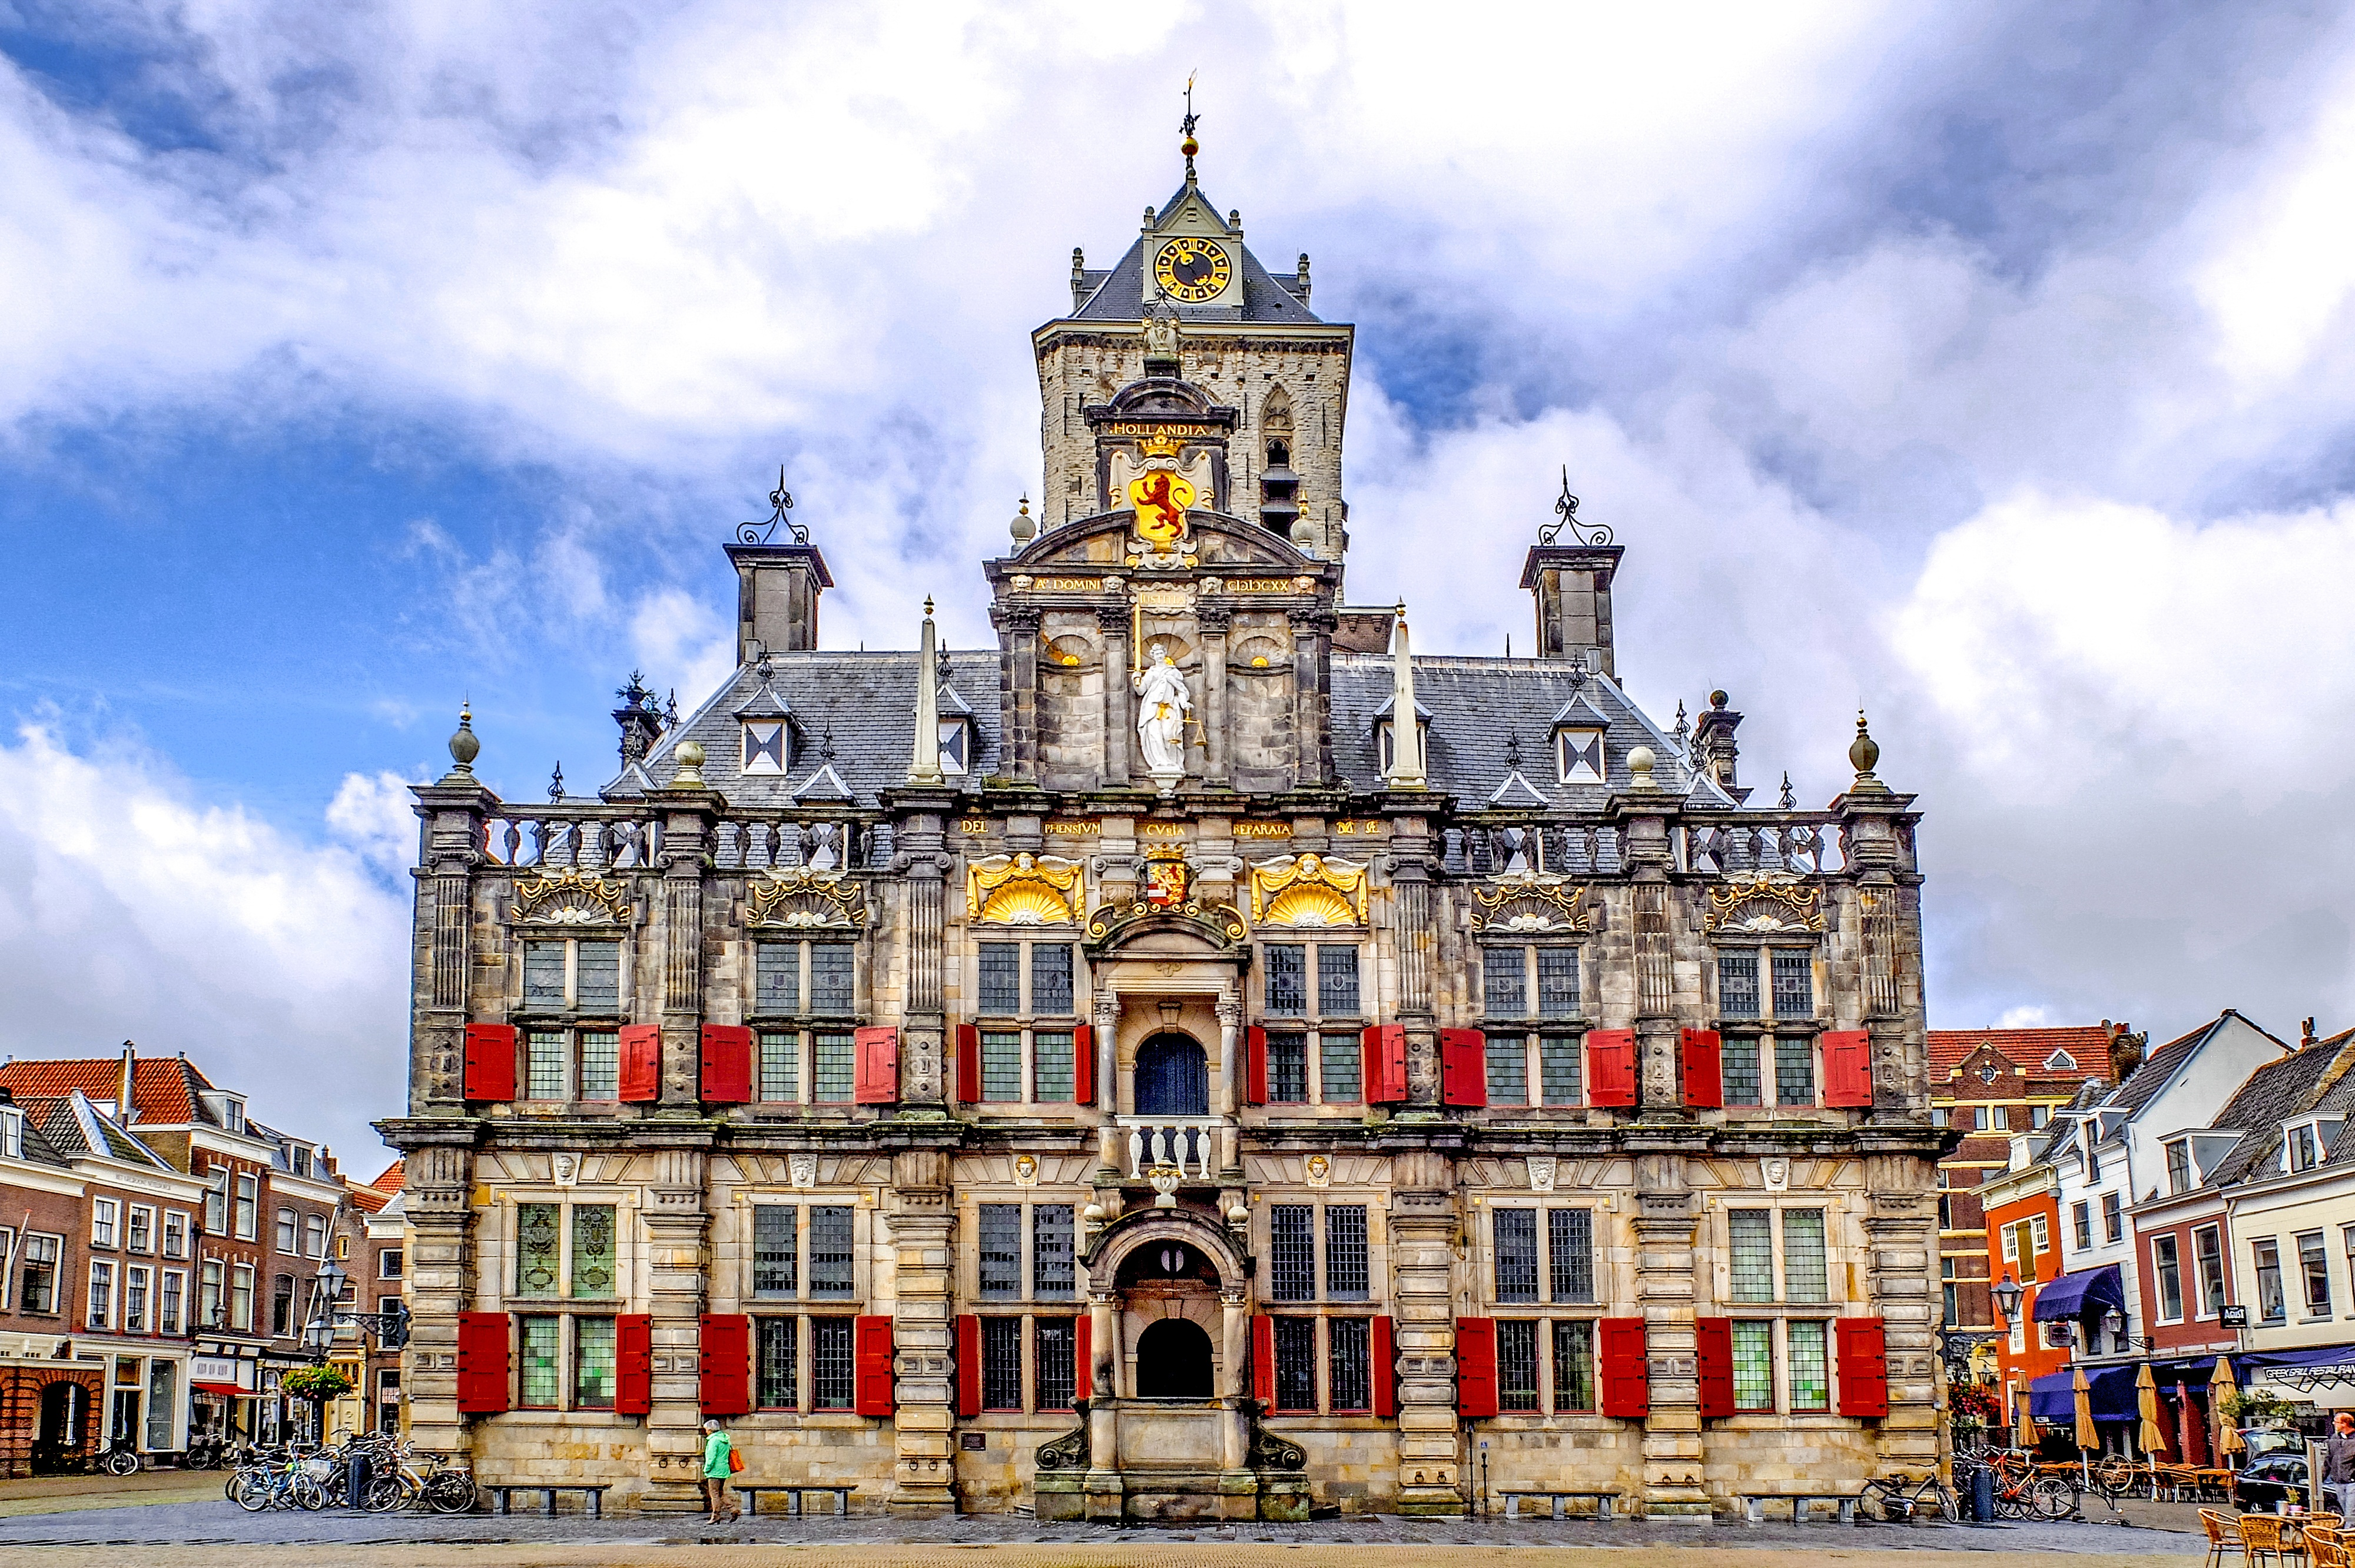 Visit Delft - These are the best things to do - Holland.com